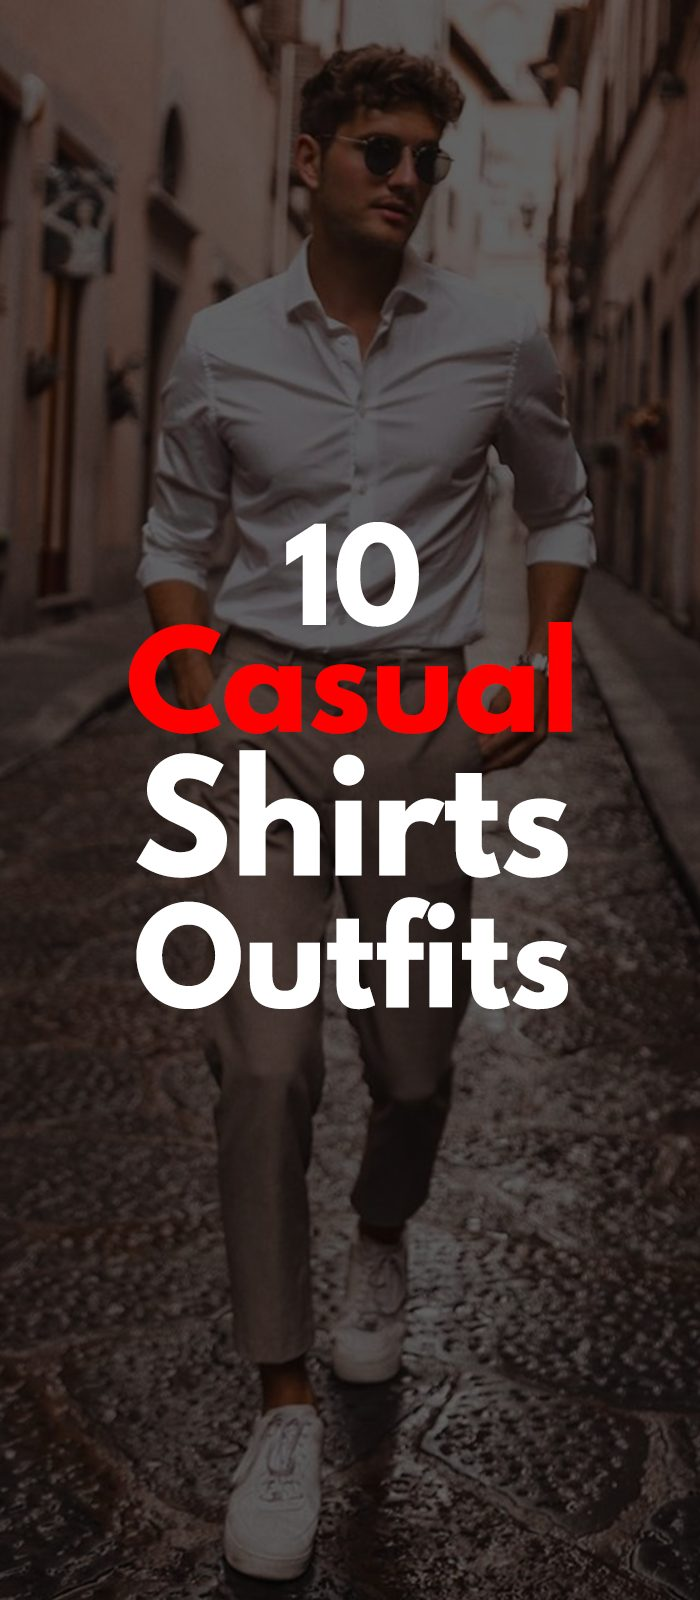 Vintage White Shirt Outfit for Casual Look